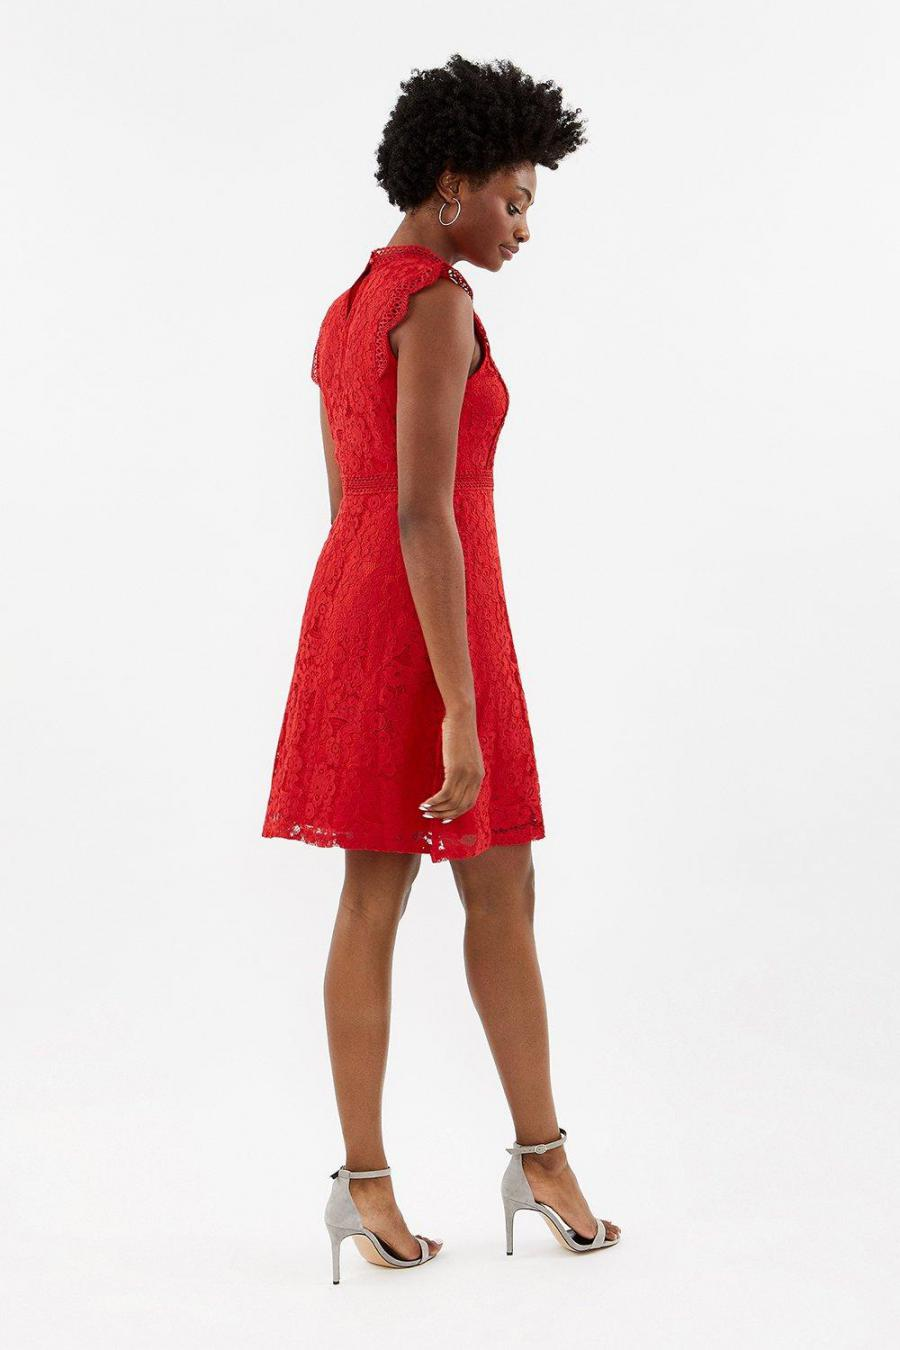 Coast A Line Dresses | Womens A-Line Lace Trim Sleeve Short Dress Red